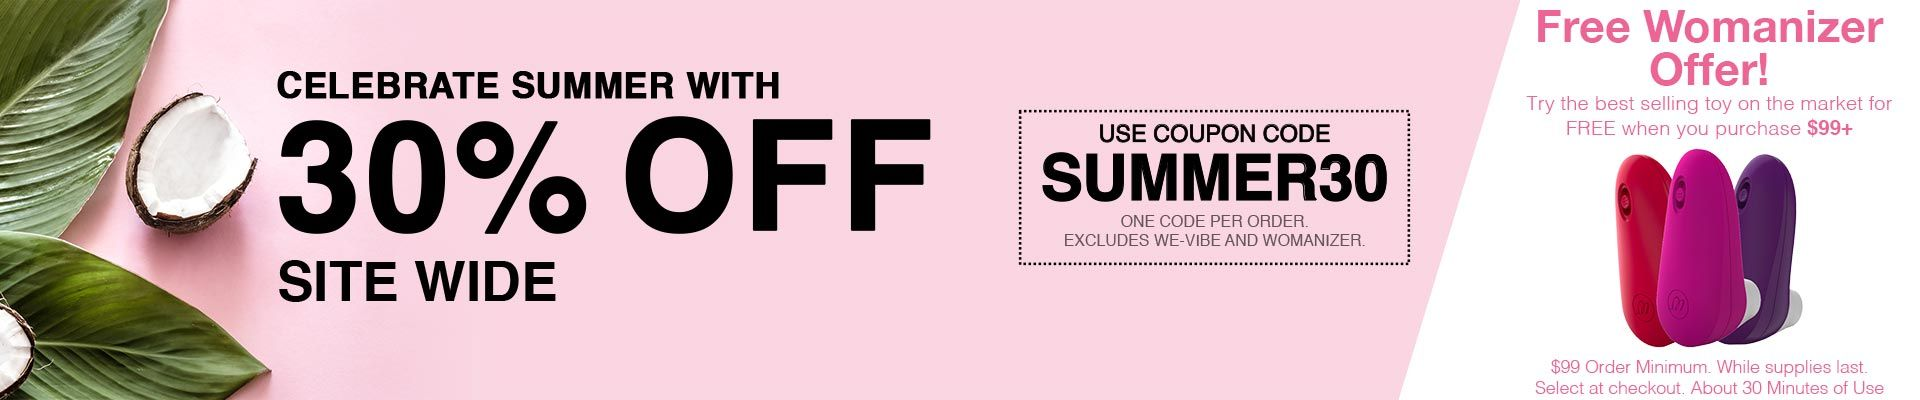 30% Off Site Wide - Use Code SUMMER30